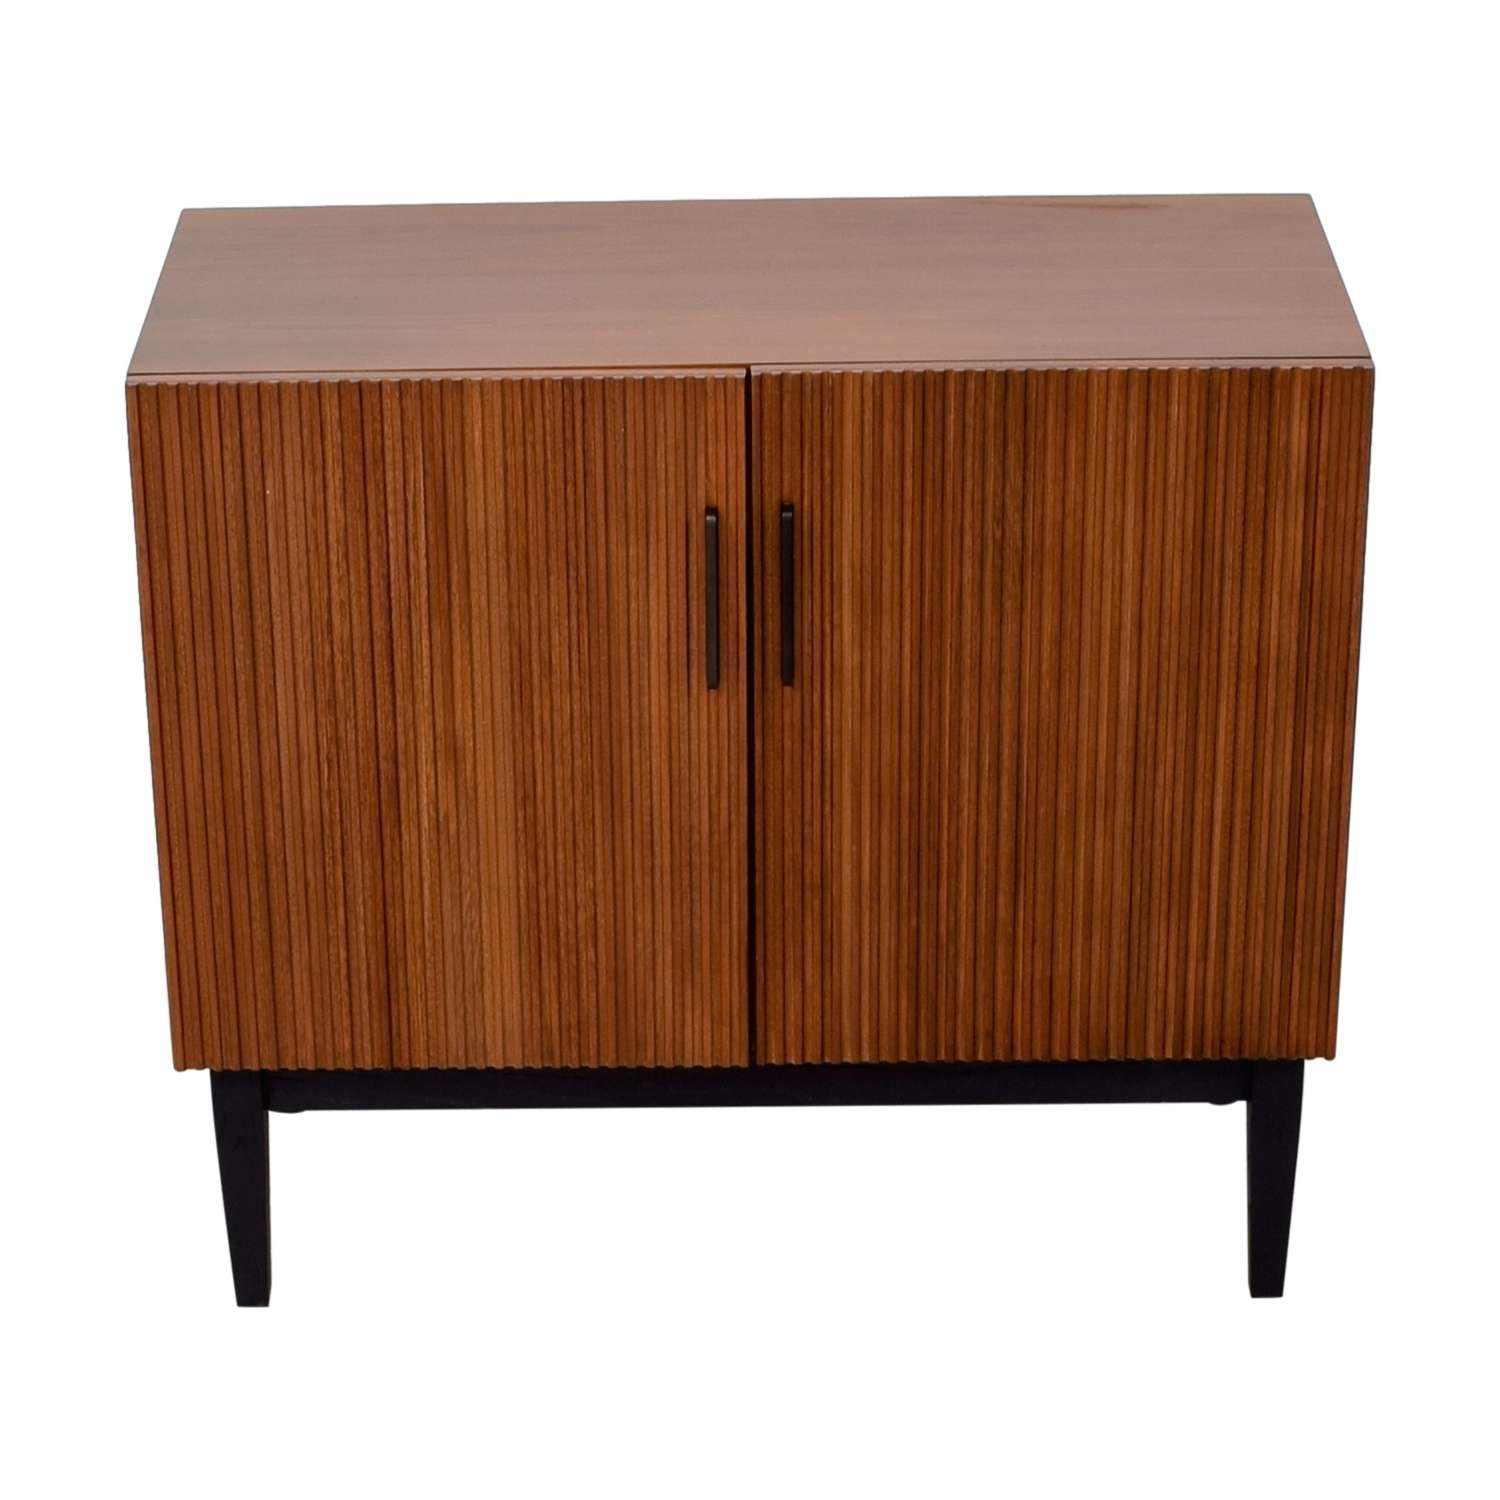 45% Off – West Elm West Elm Wood Bar Cabinet / Storage Throughout Sideboards Bar Cabinet (View 2 of 20)